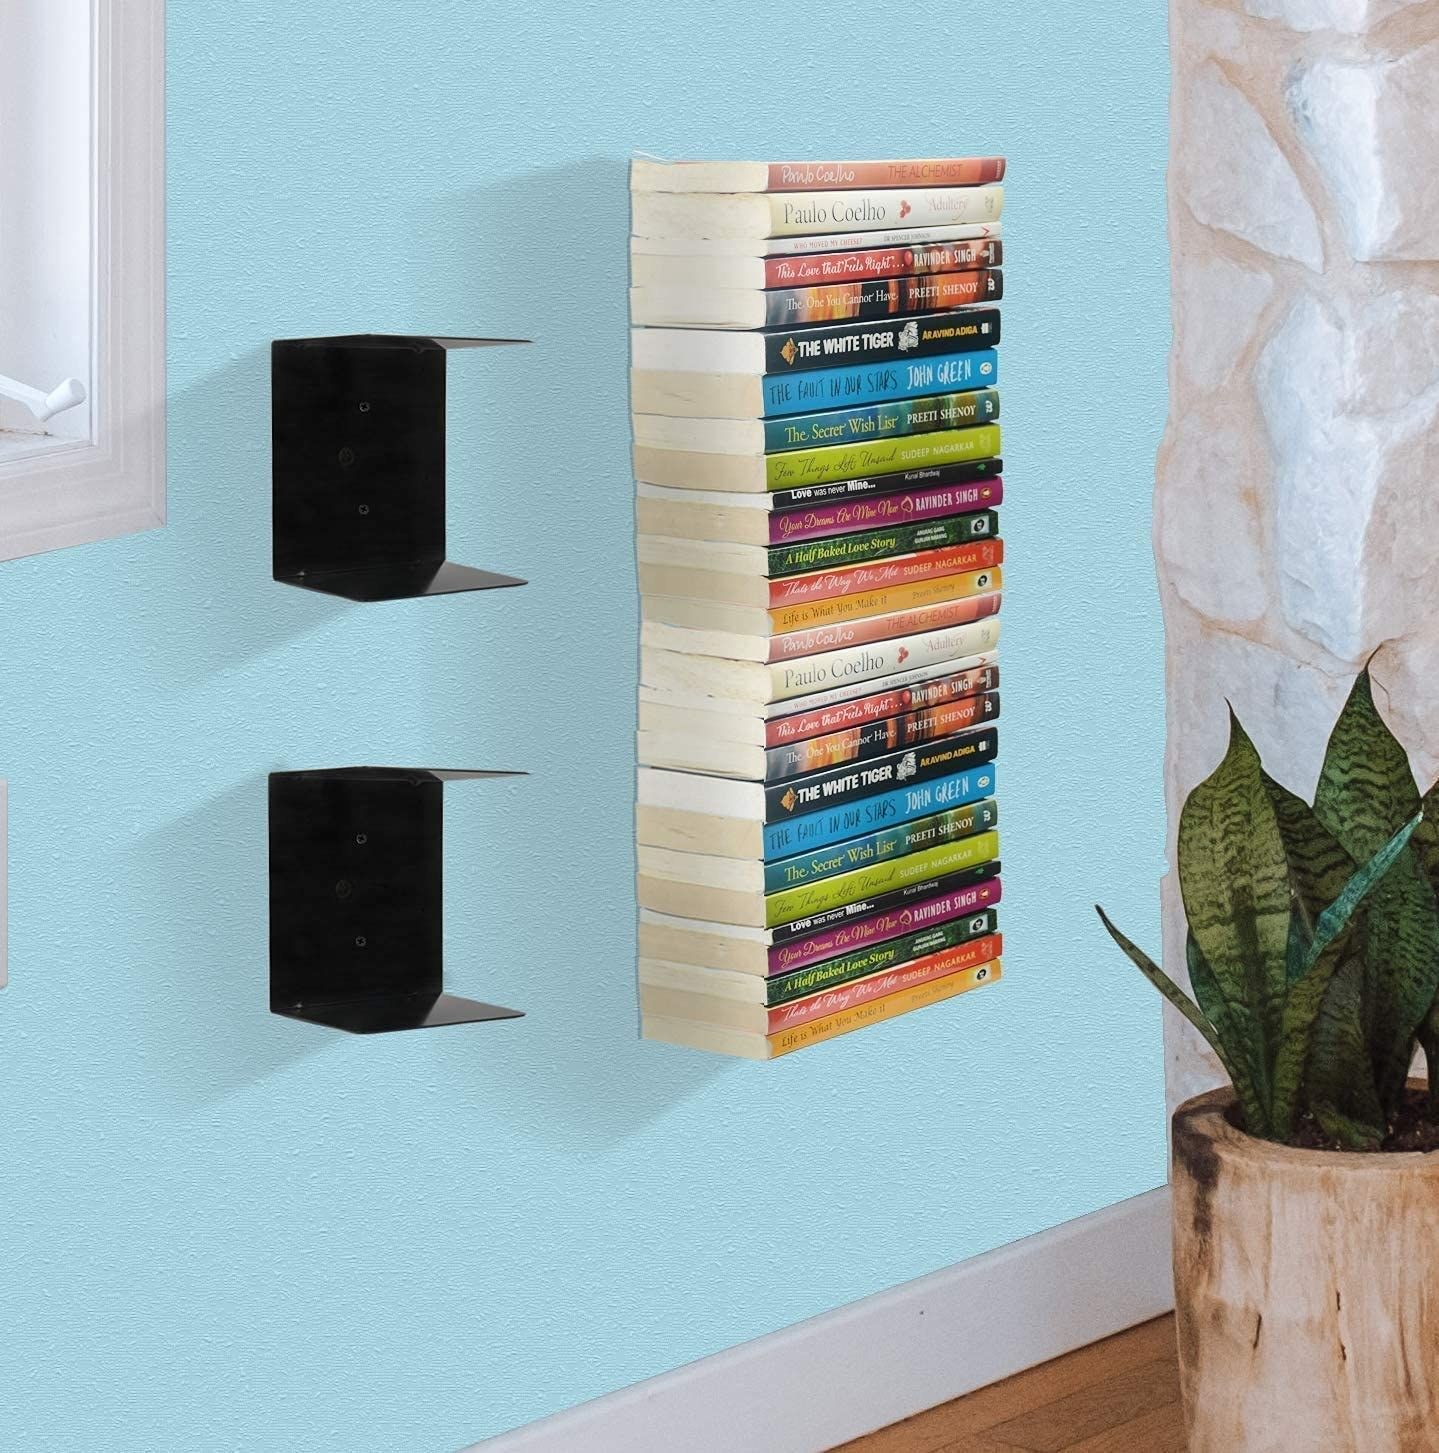 2 bookshelves filled with books seeming to float mounted on a wall